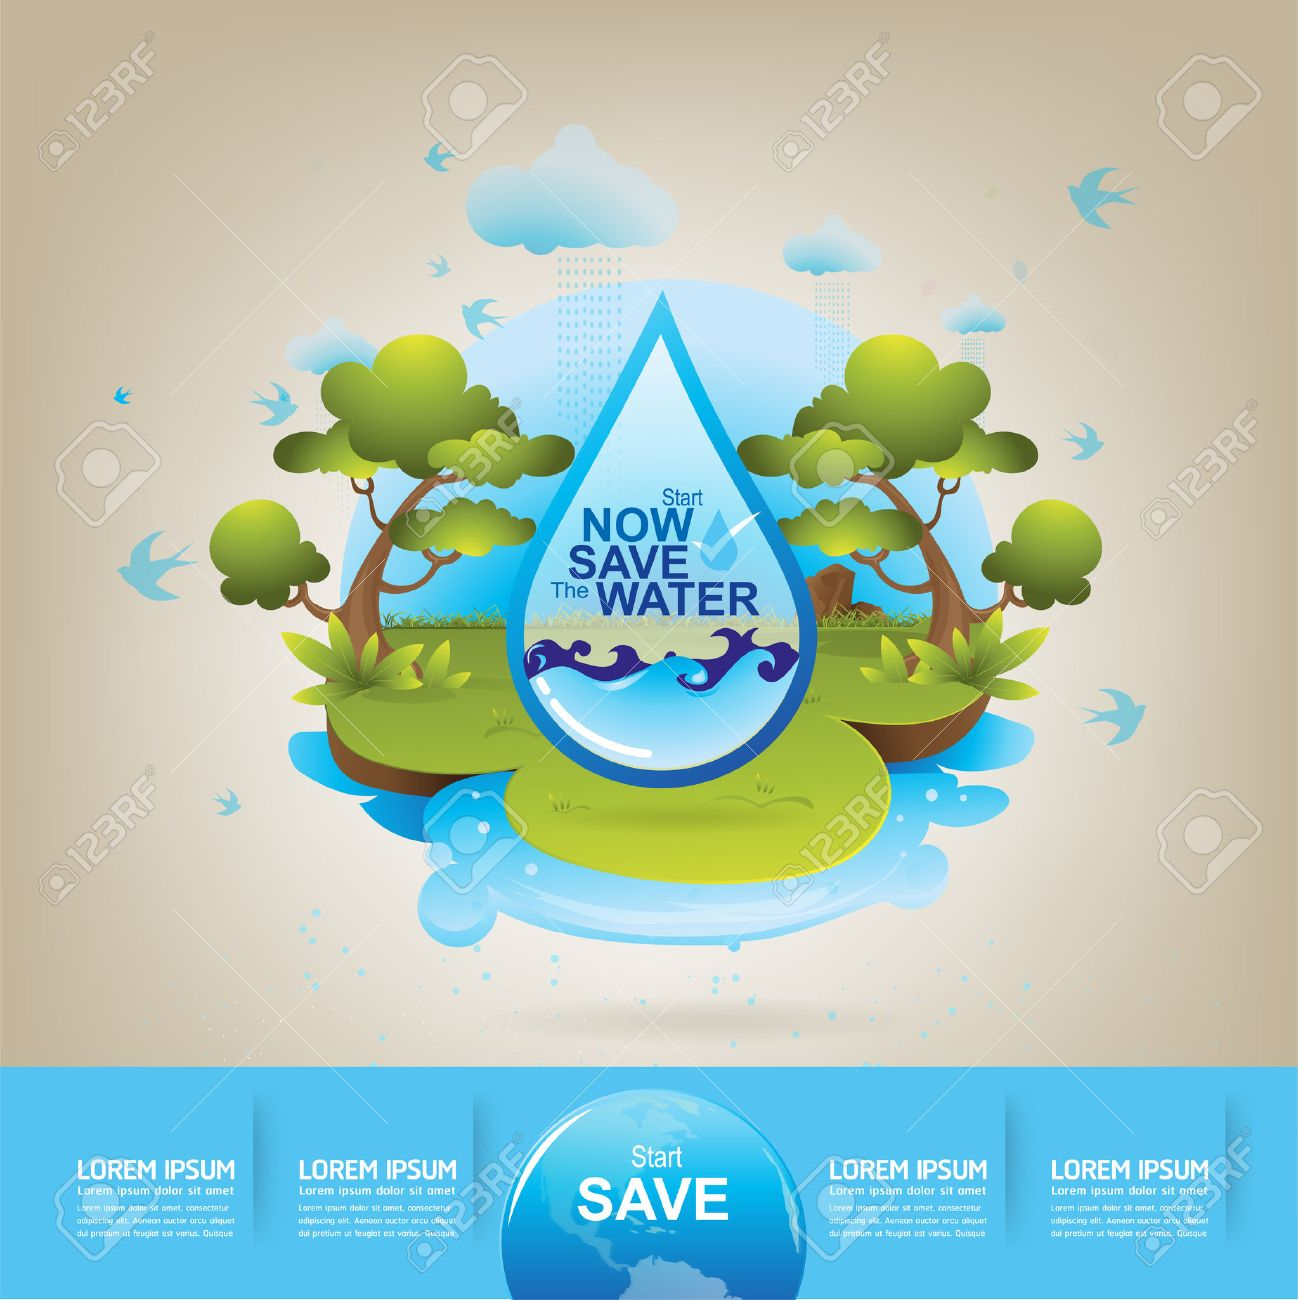 water conservation stock photos royalty free water conservation images